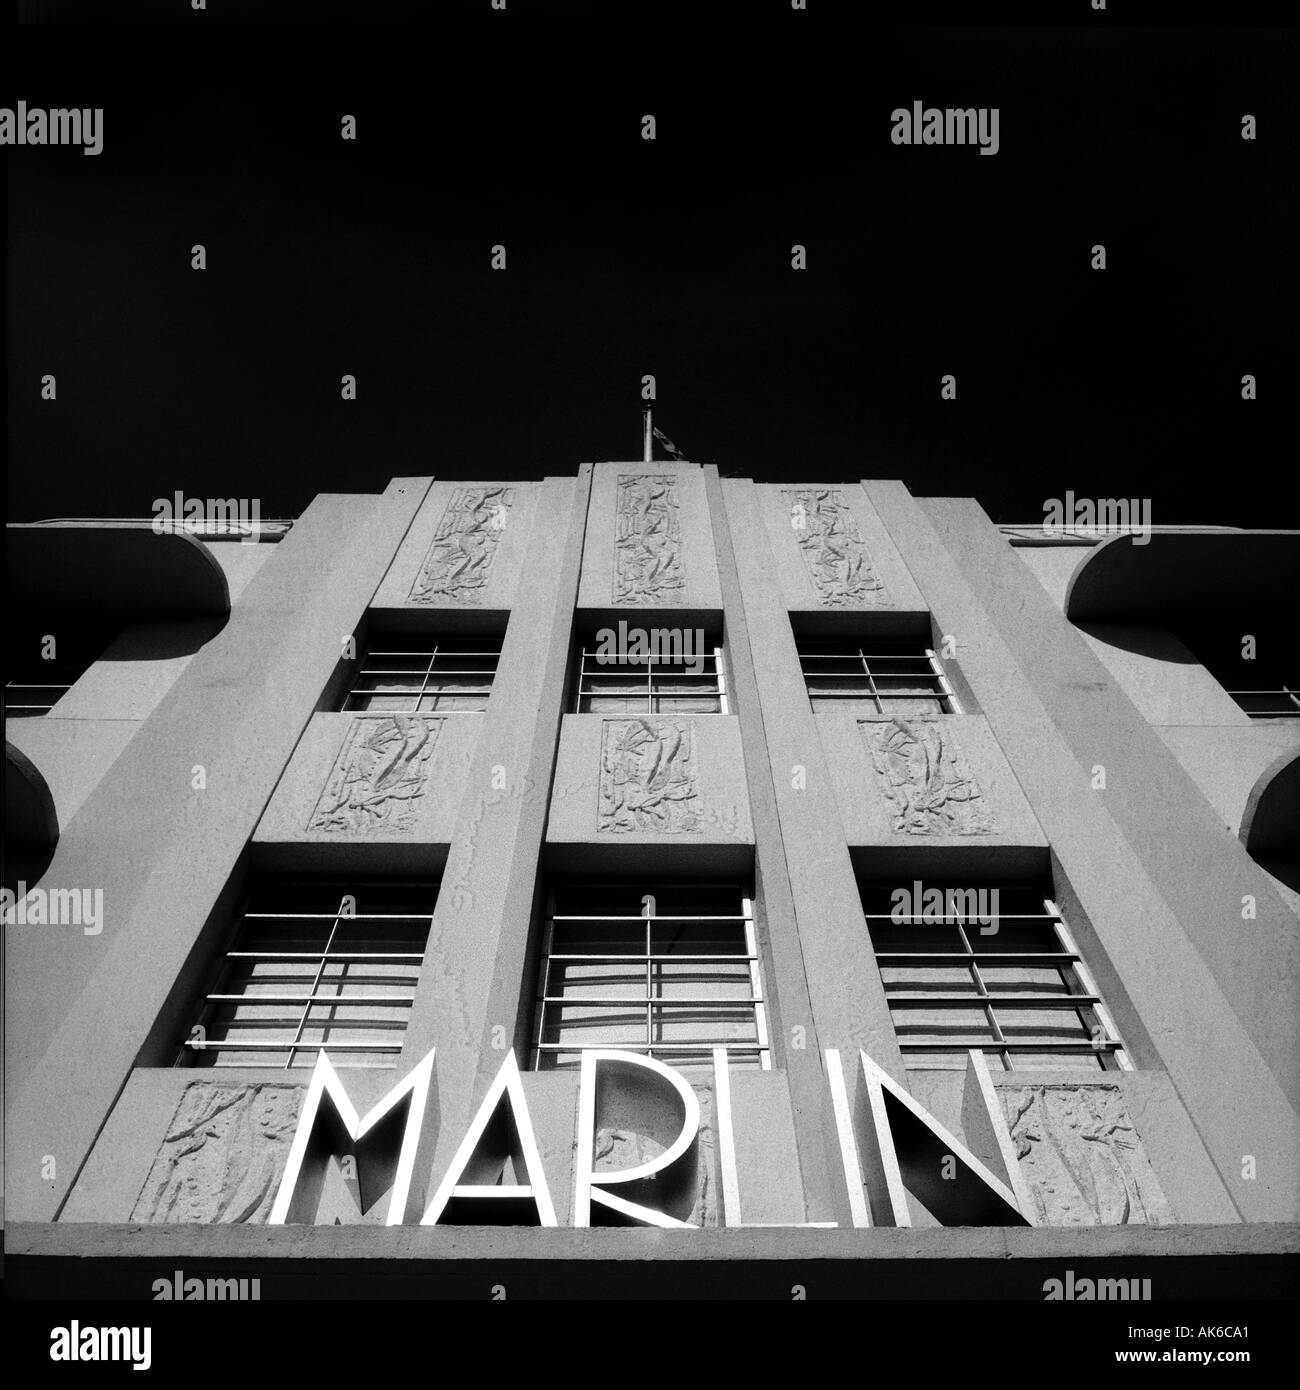 Facade of the Marlin hotel in Miami s South Beach Art Deco District - Stock Image